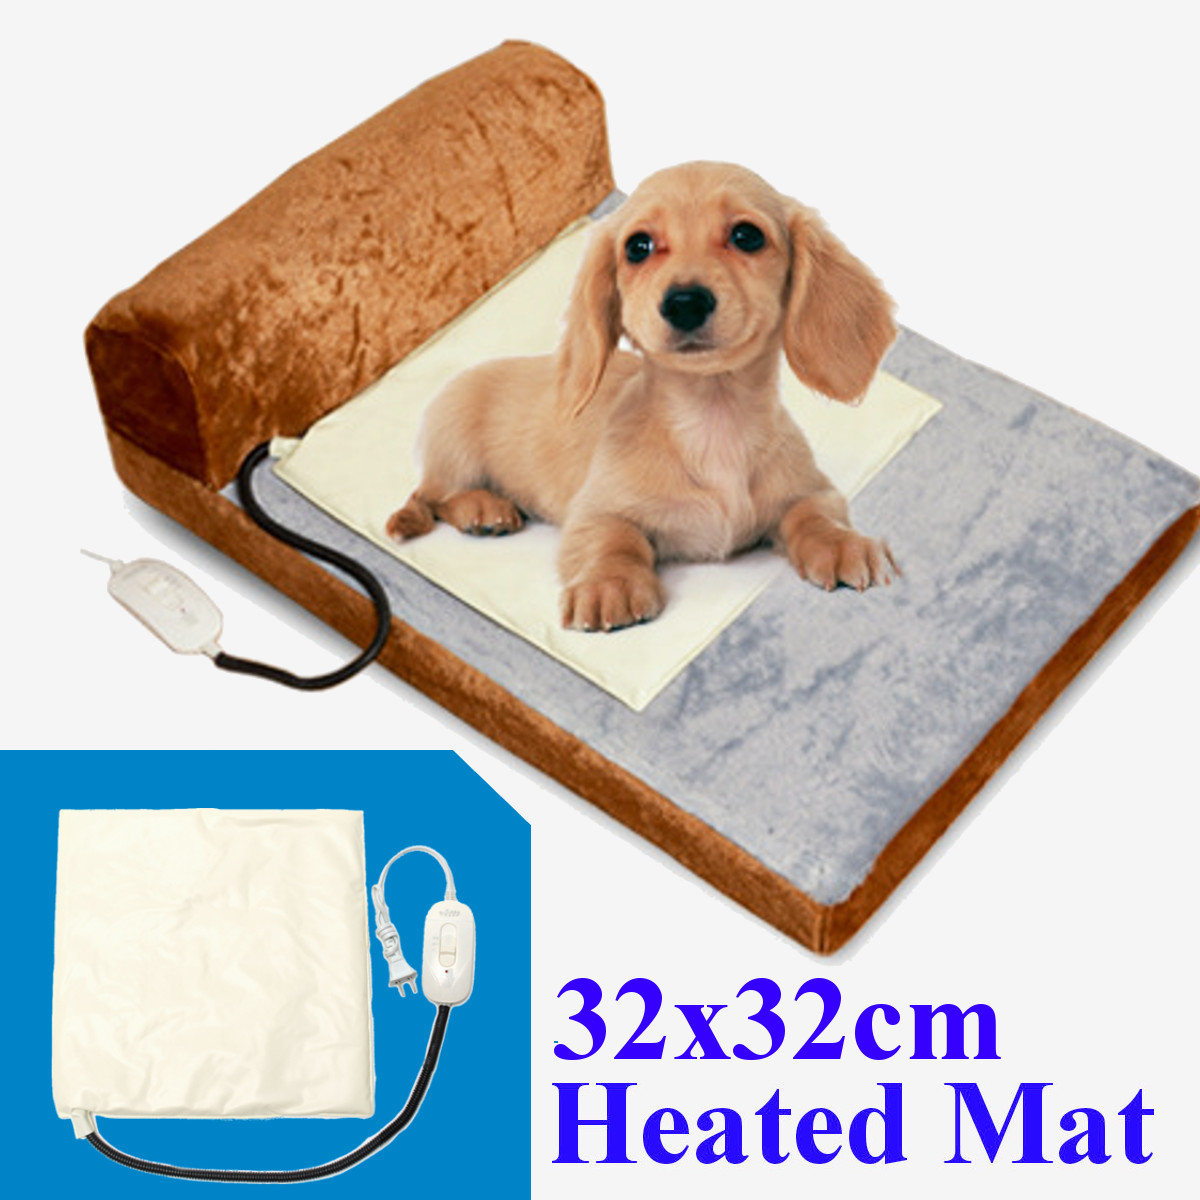 32 Electric Warmer Heated Pet Dog Cat Puppy Bed Pad Mats Dog Cat Puppy Heating Waterproof Blanket